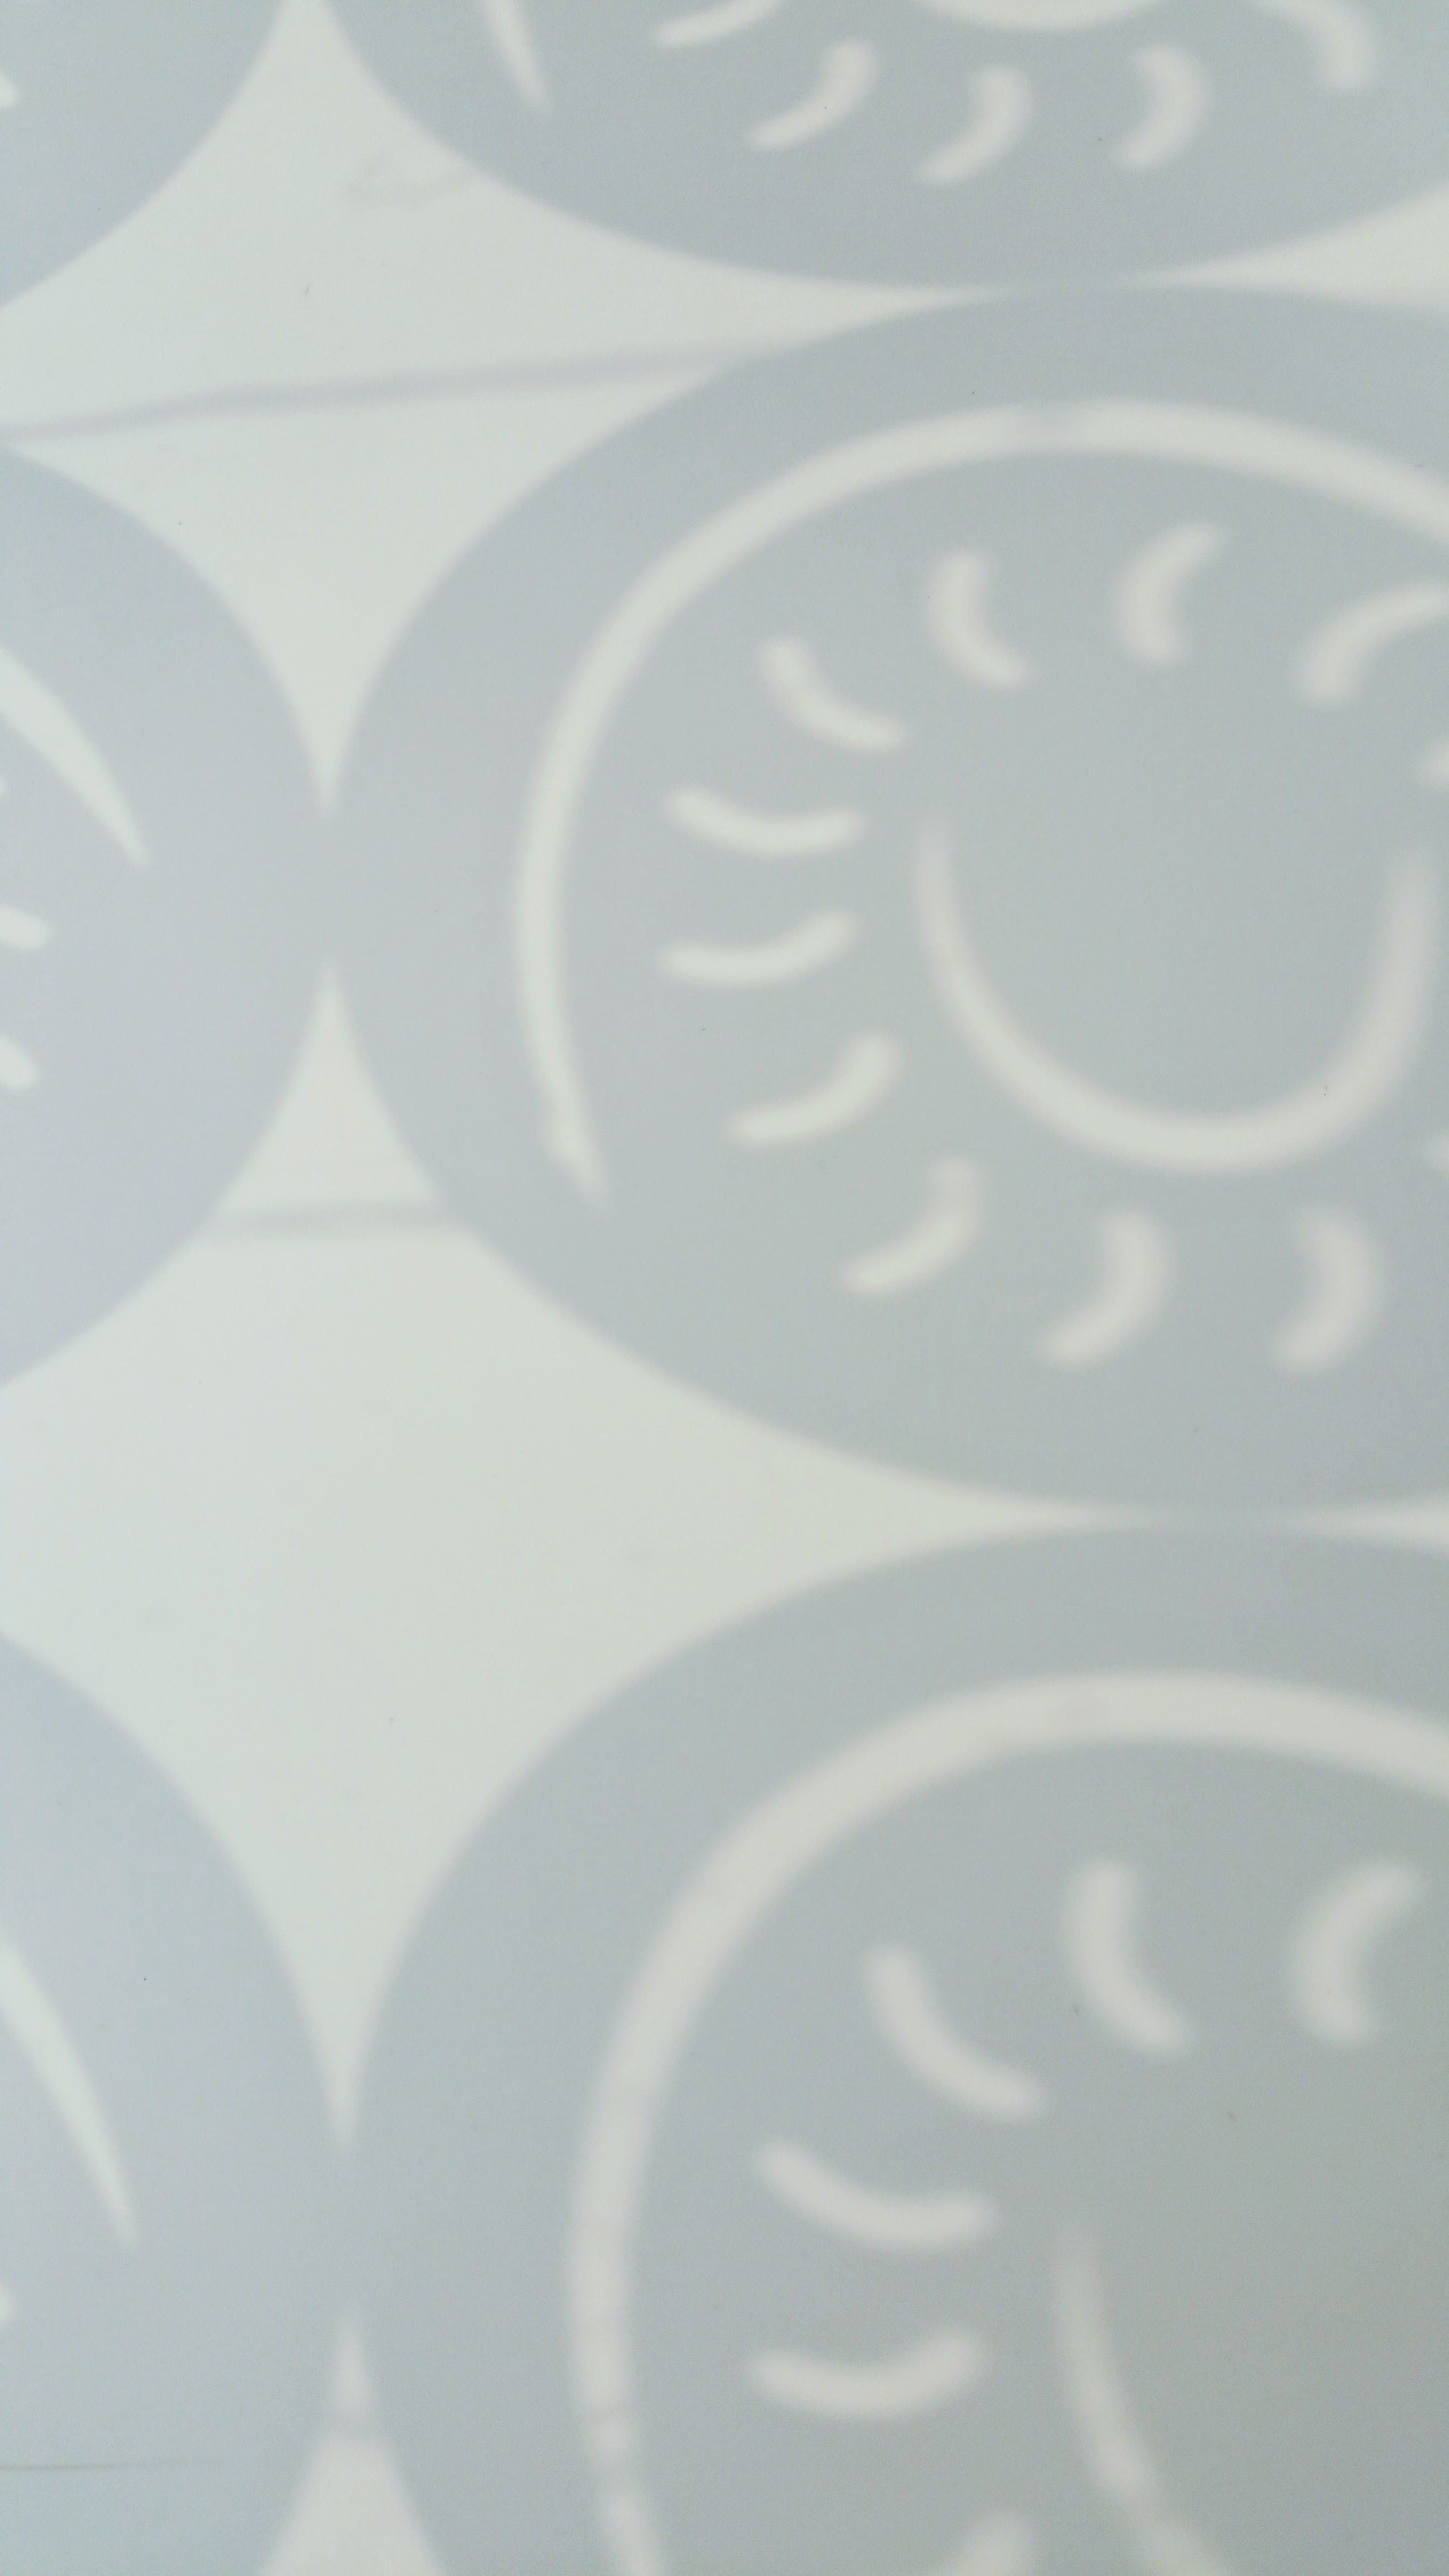 Free stock photo of day, grey, pattern, shadow